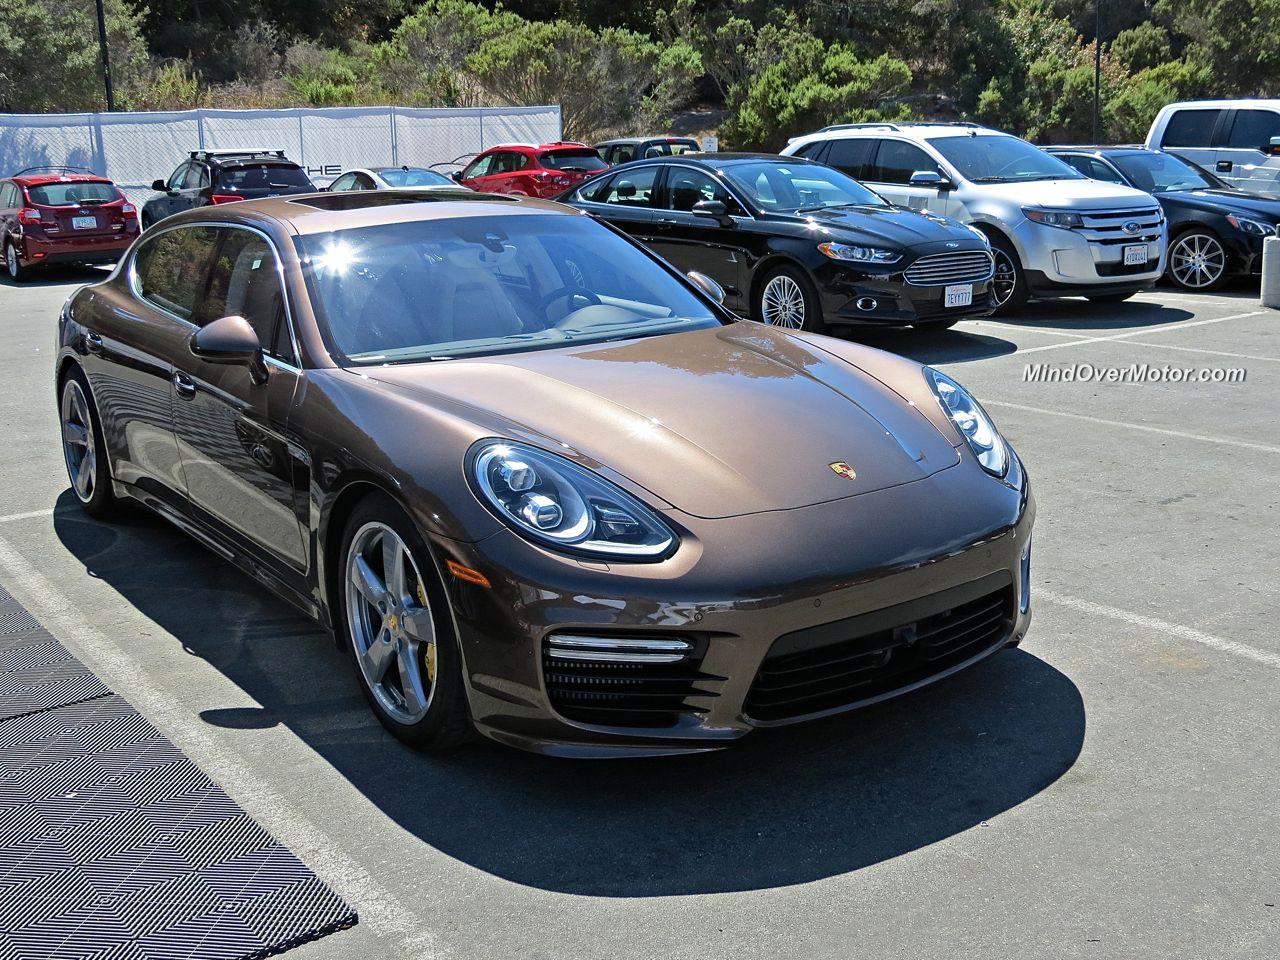 Porsche Panamera Turbo S Executive in Carmel CA